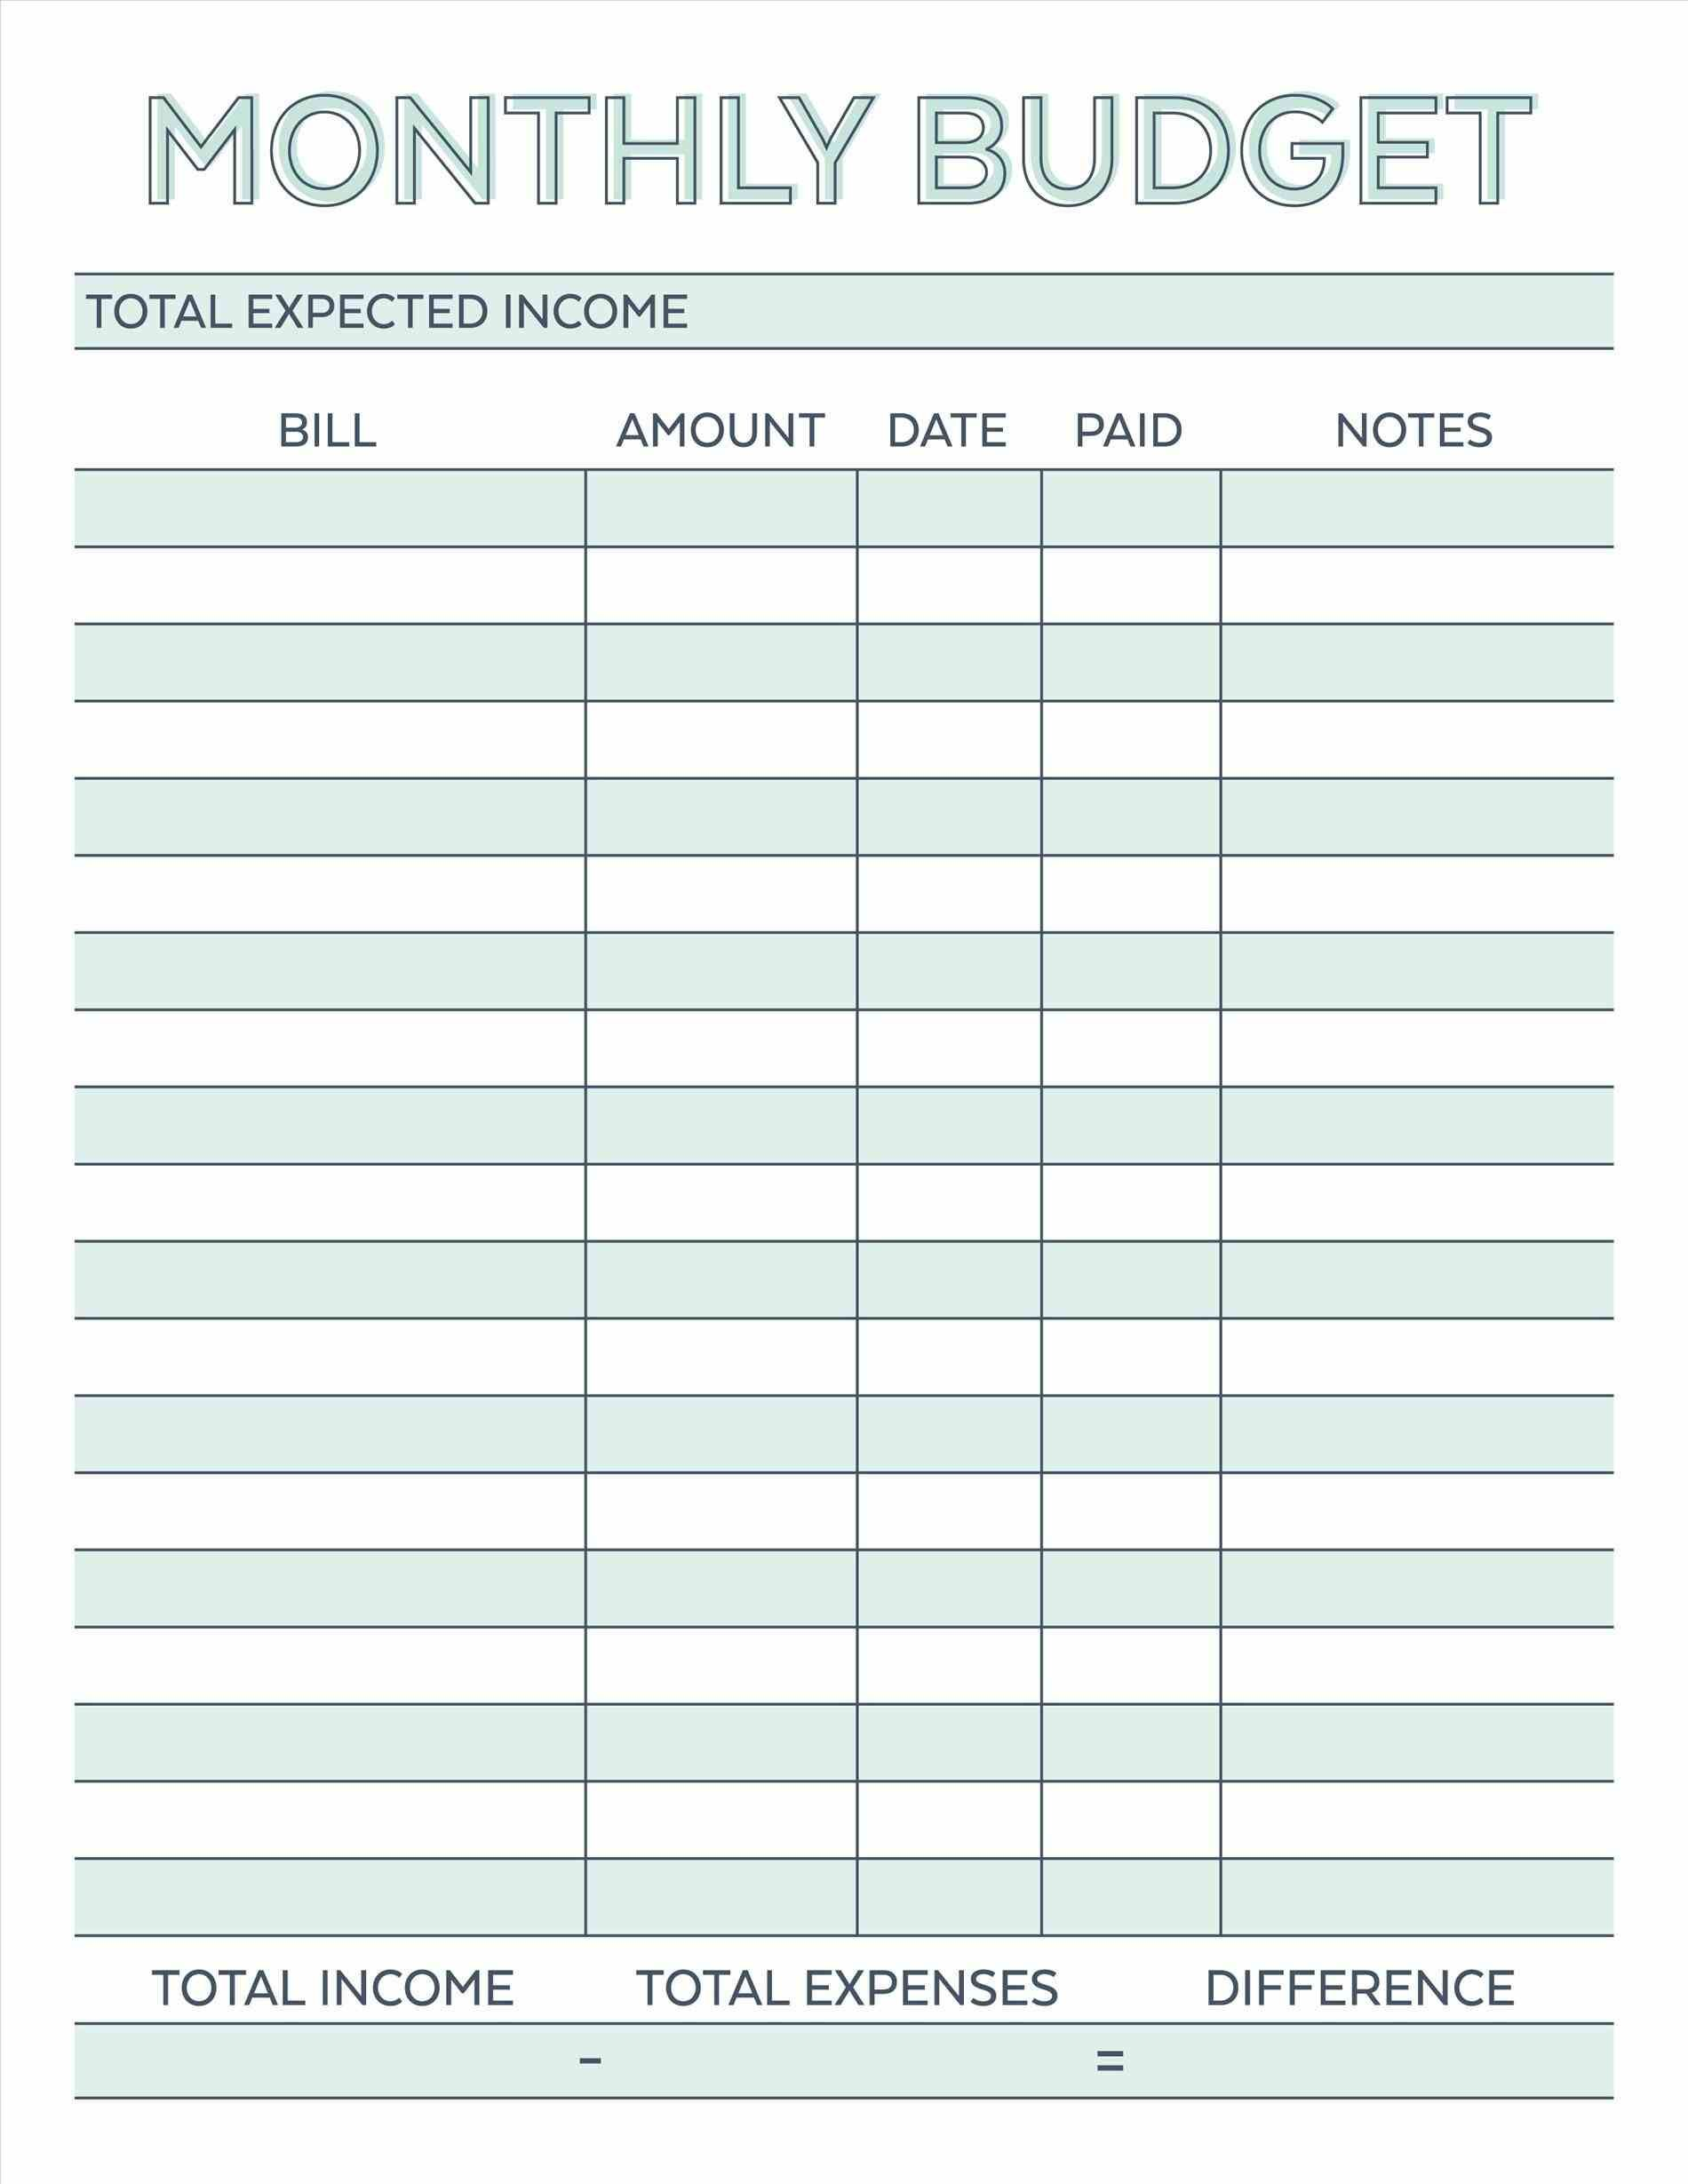 Worksheets Monthly Bill Worksheet budget planner worksheet monthly bills template free printable simple monthly